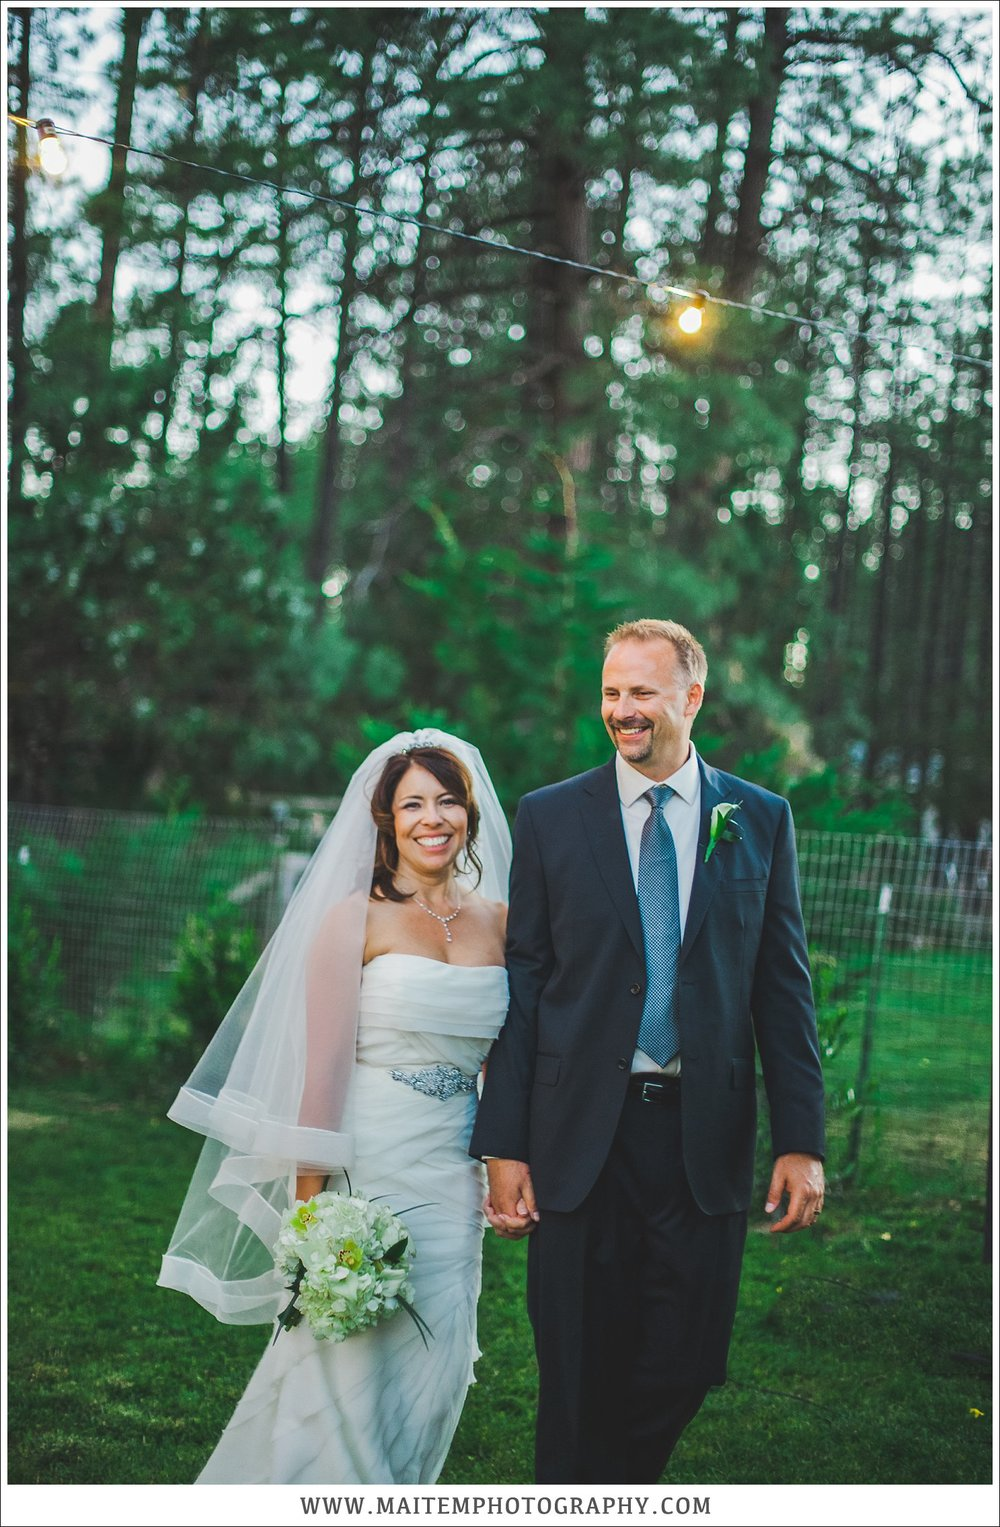 Mr.&Mrs.Kucewesky (34 of 114).jpg